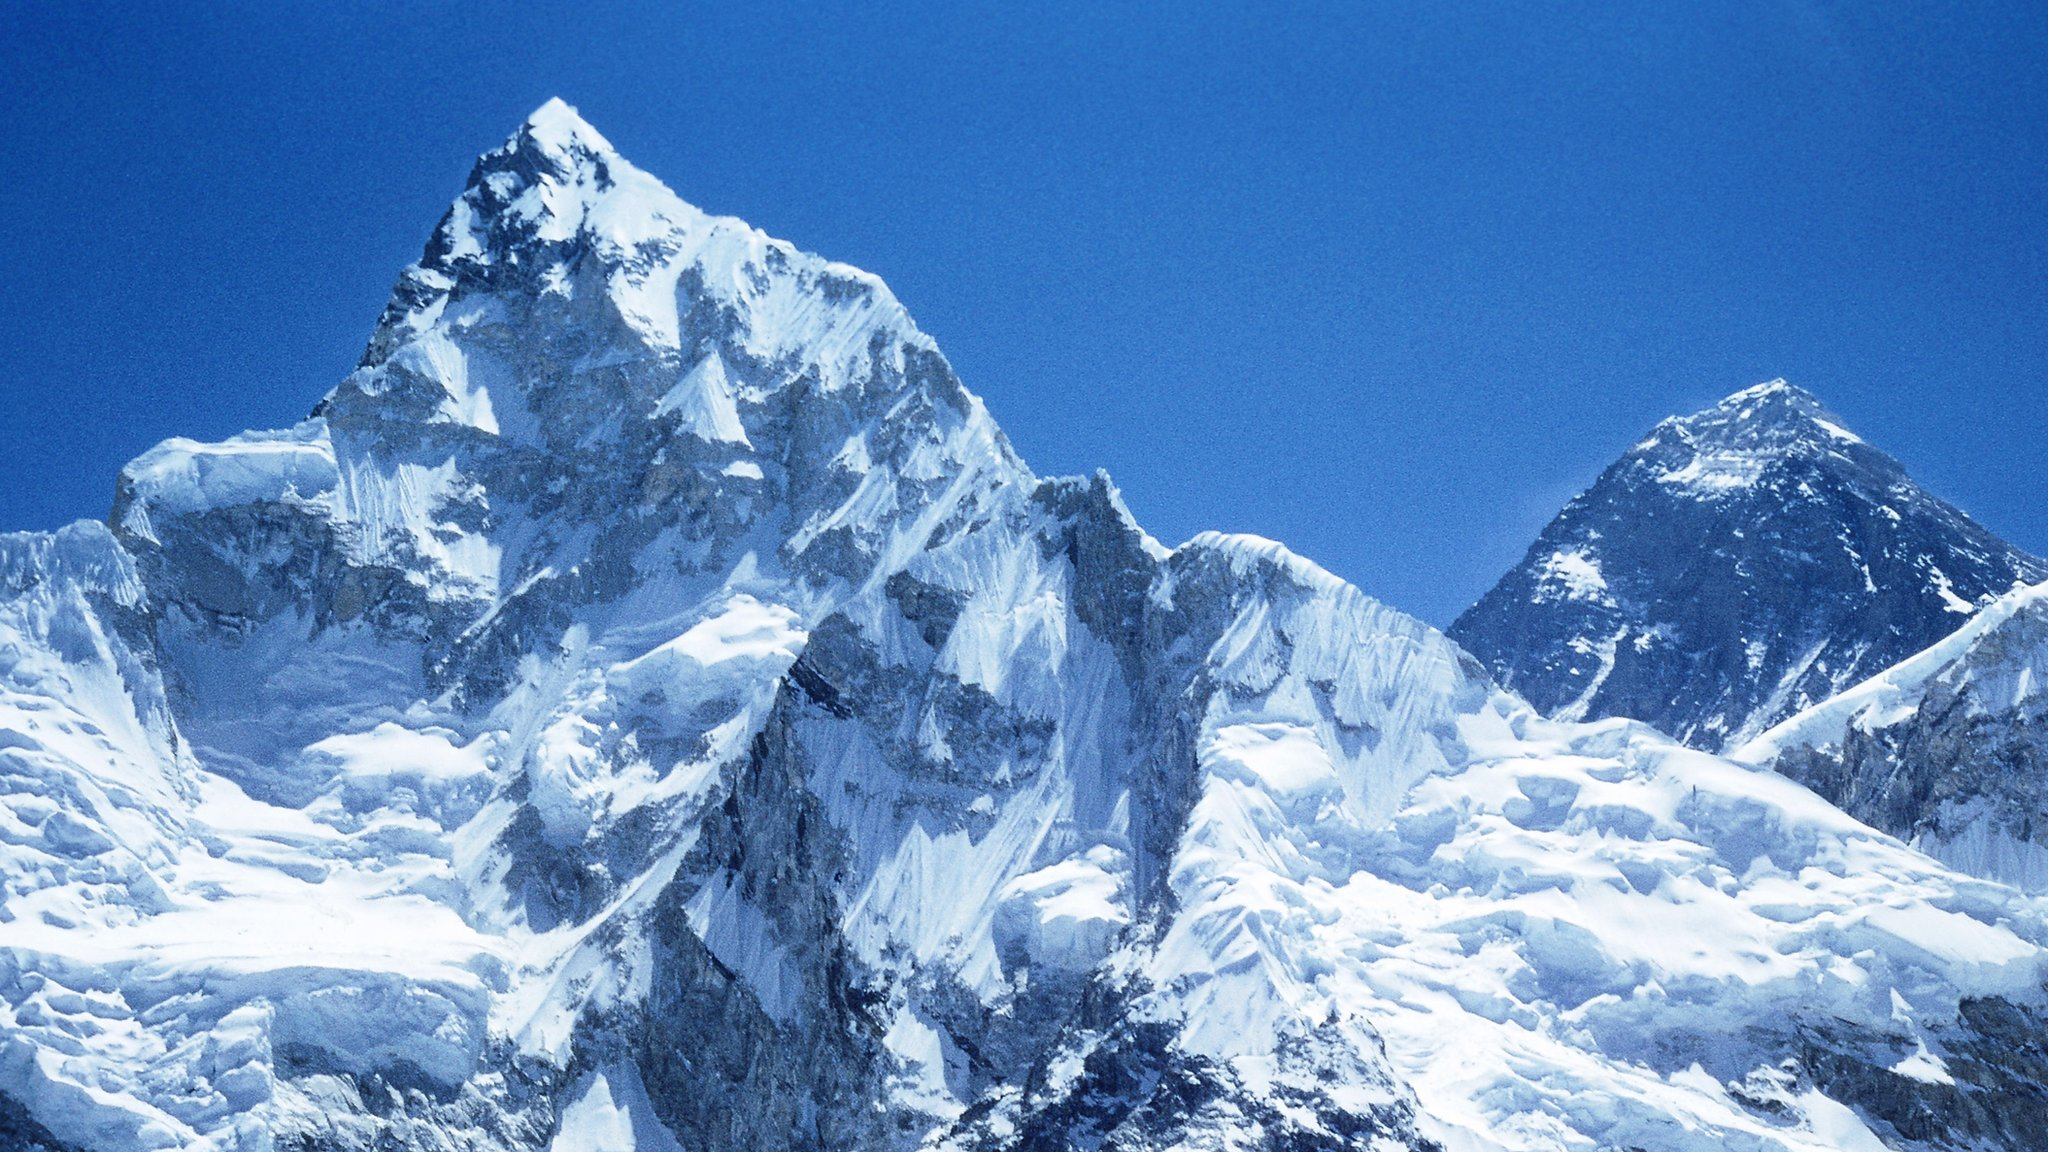 mount everest facts - HD 2048×1152